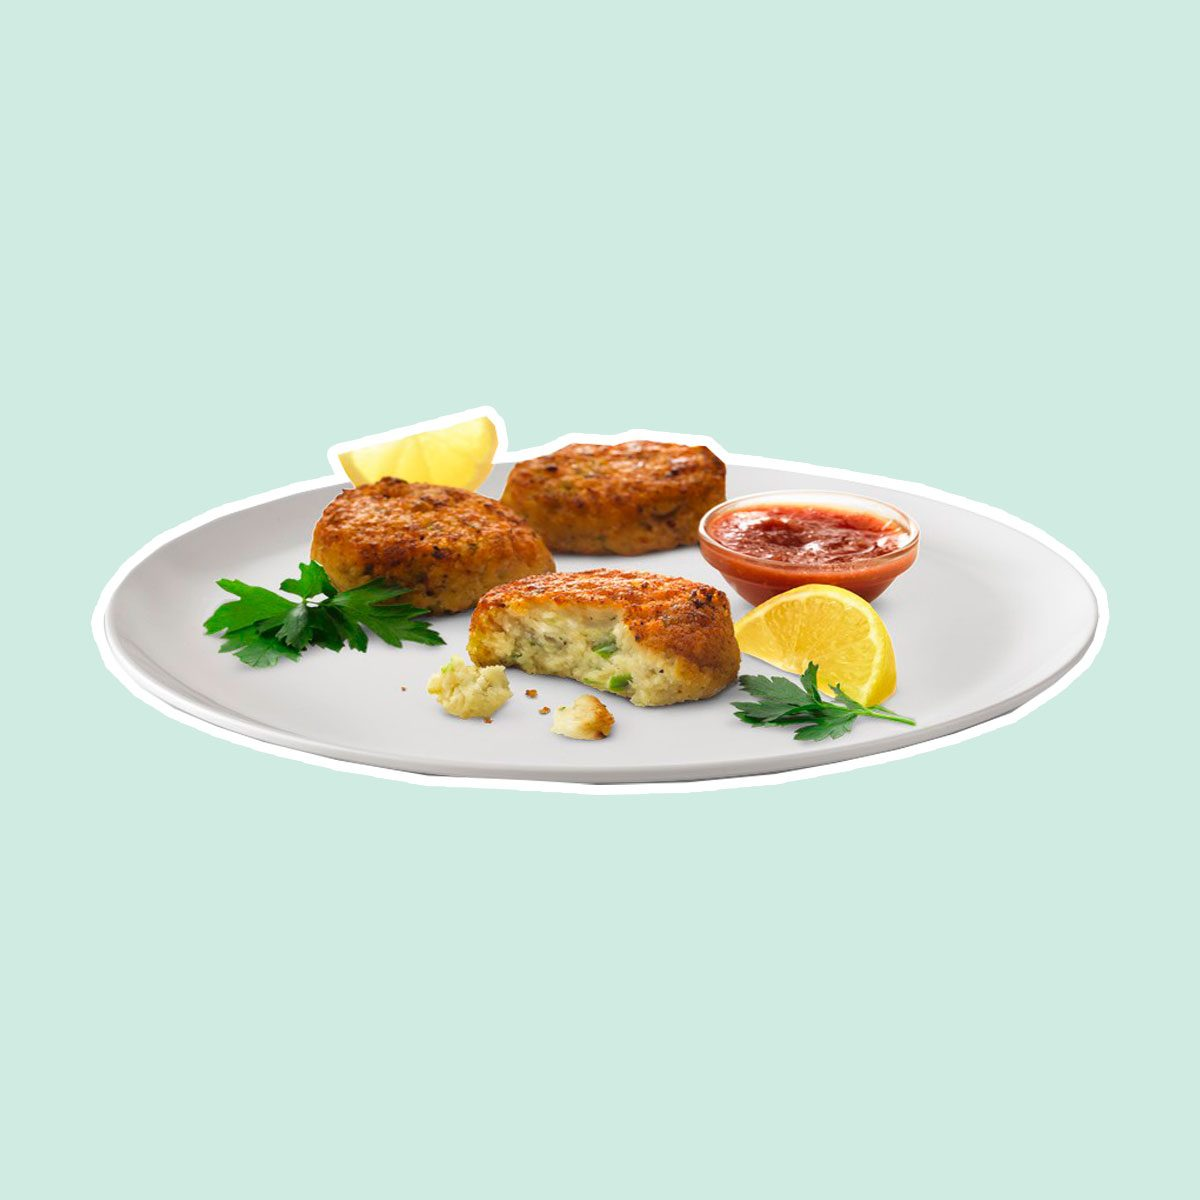 Chilled Crab Cakes